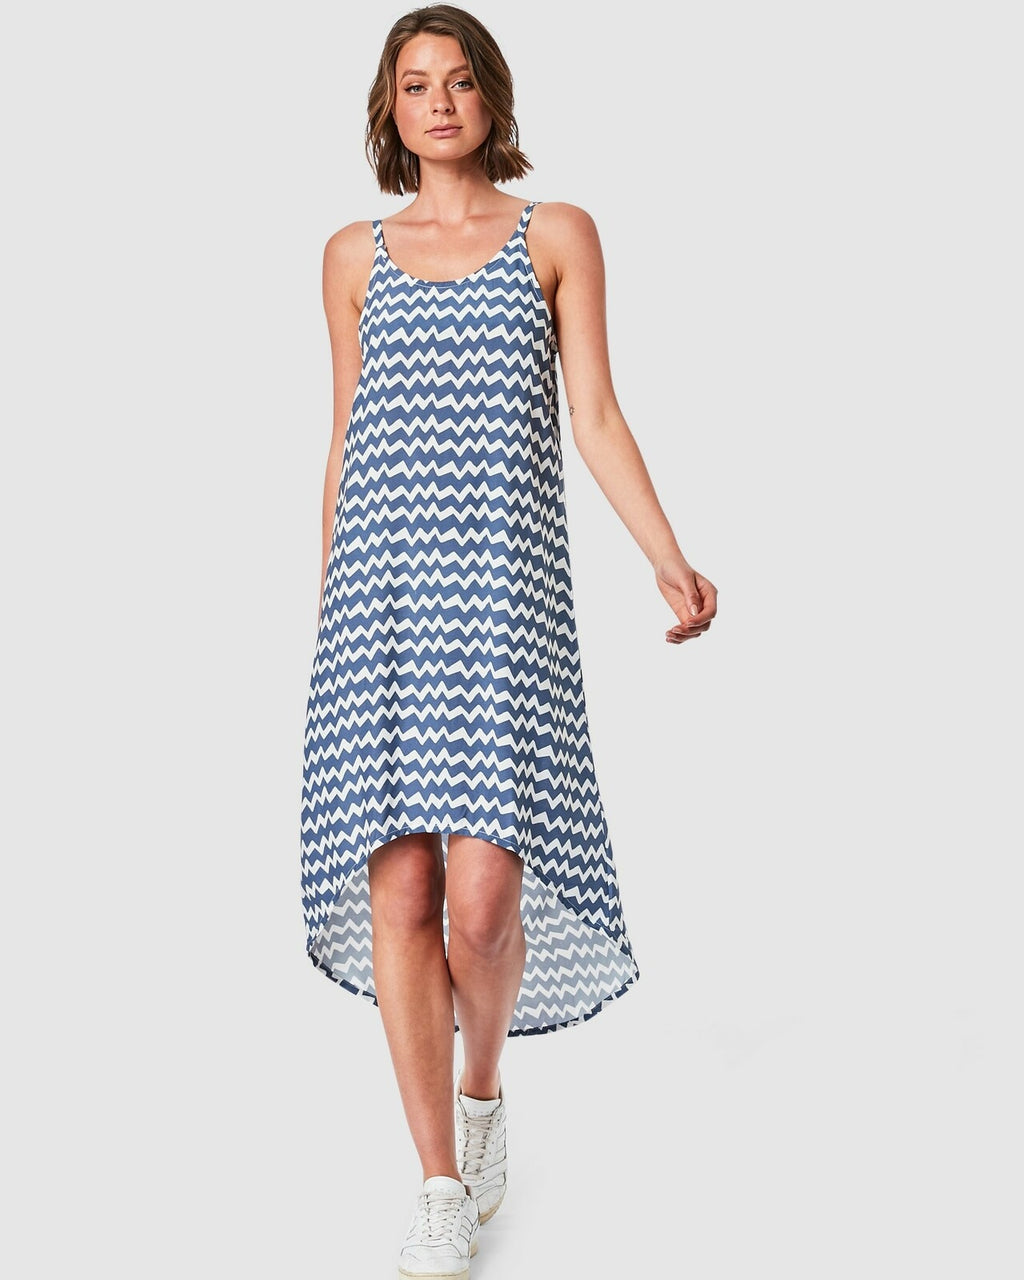 Elwood / Zoe Slip Dress / Chevron